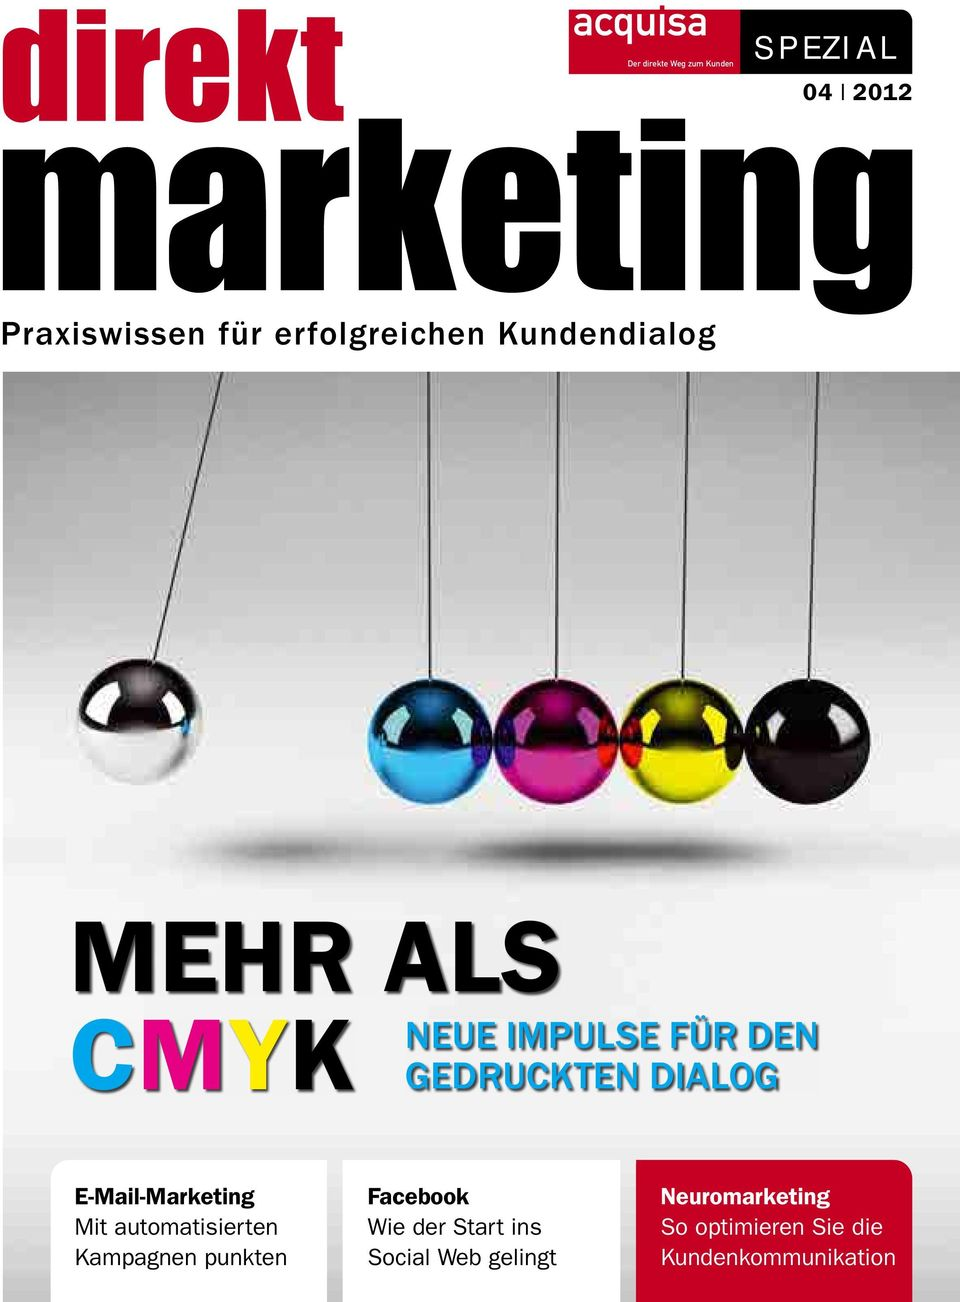 dialog E-Mail-Marketing Mit automatisierten Kampagnen punkten Facebook Wie